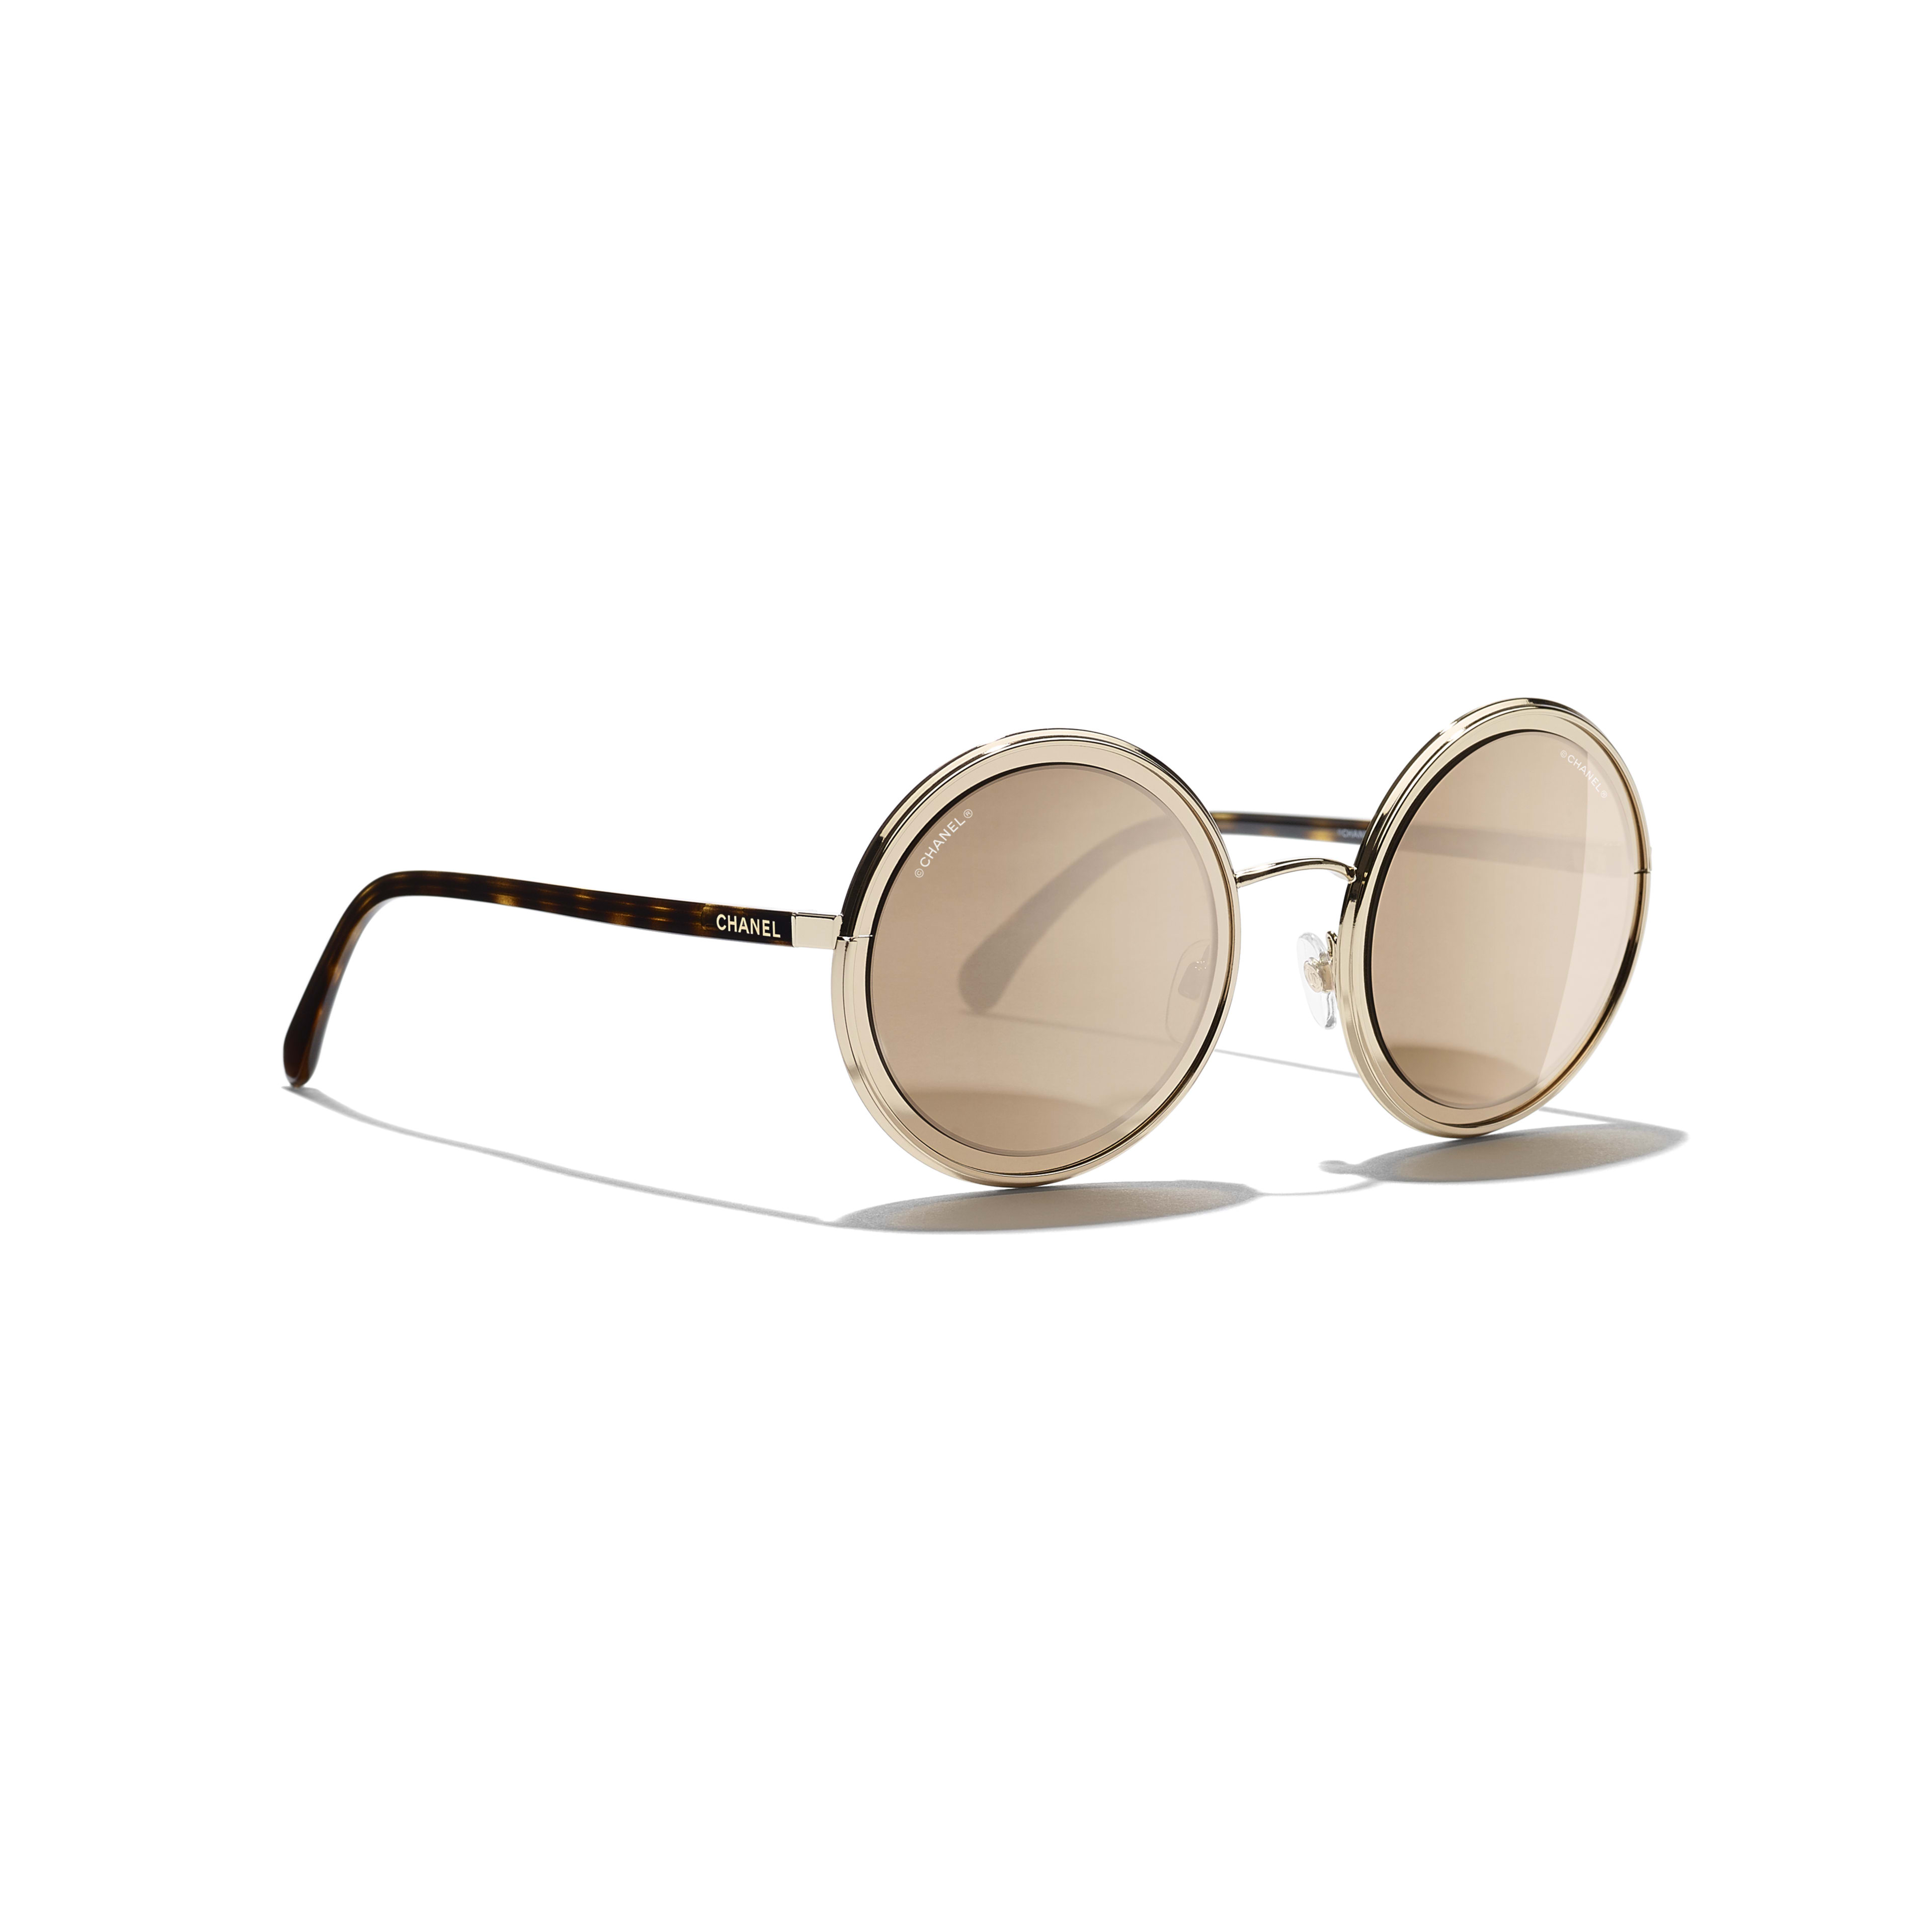 Round Sunglasses - Gold - Metal - 18-Karat Gold Lenses - Extra view - see full sized version